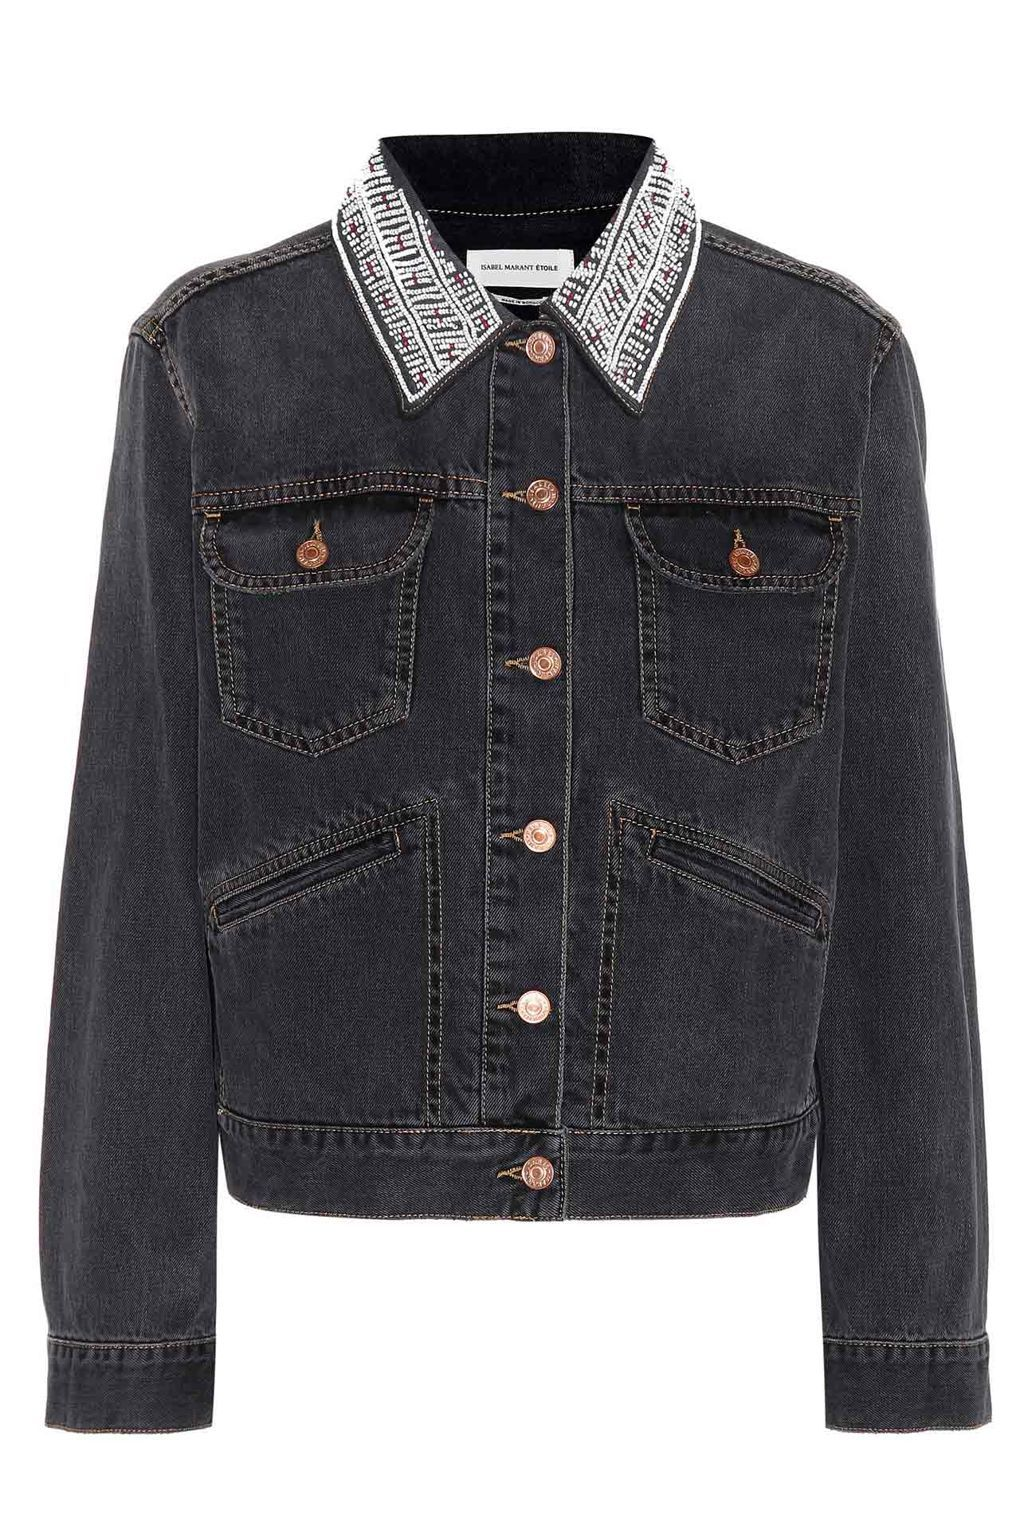 4a7a1db379 Embellished Denim Jackets - Isabel Marant Etoile